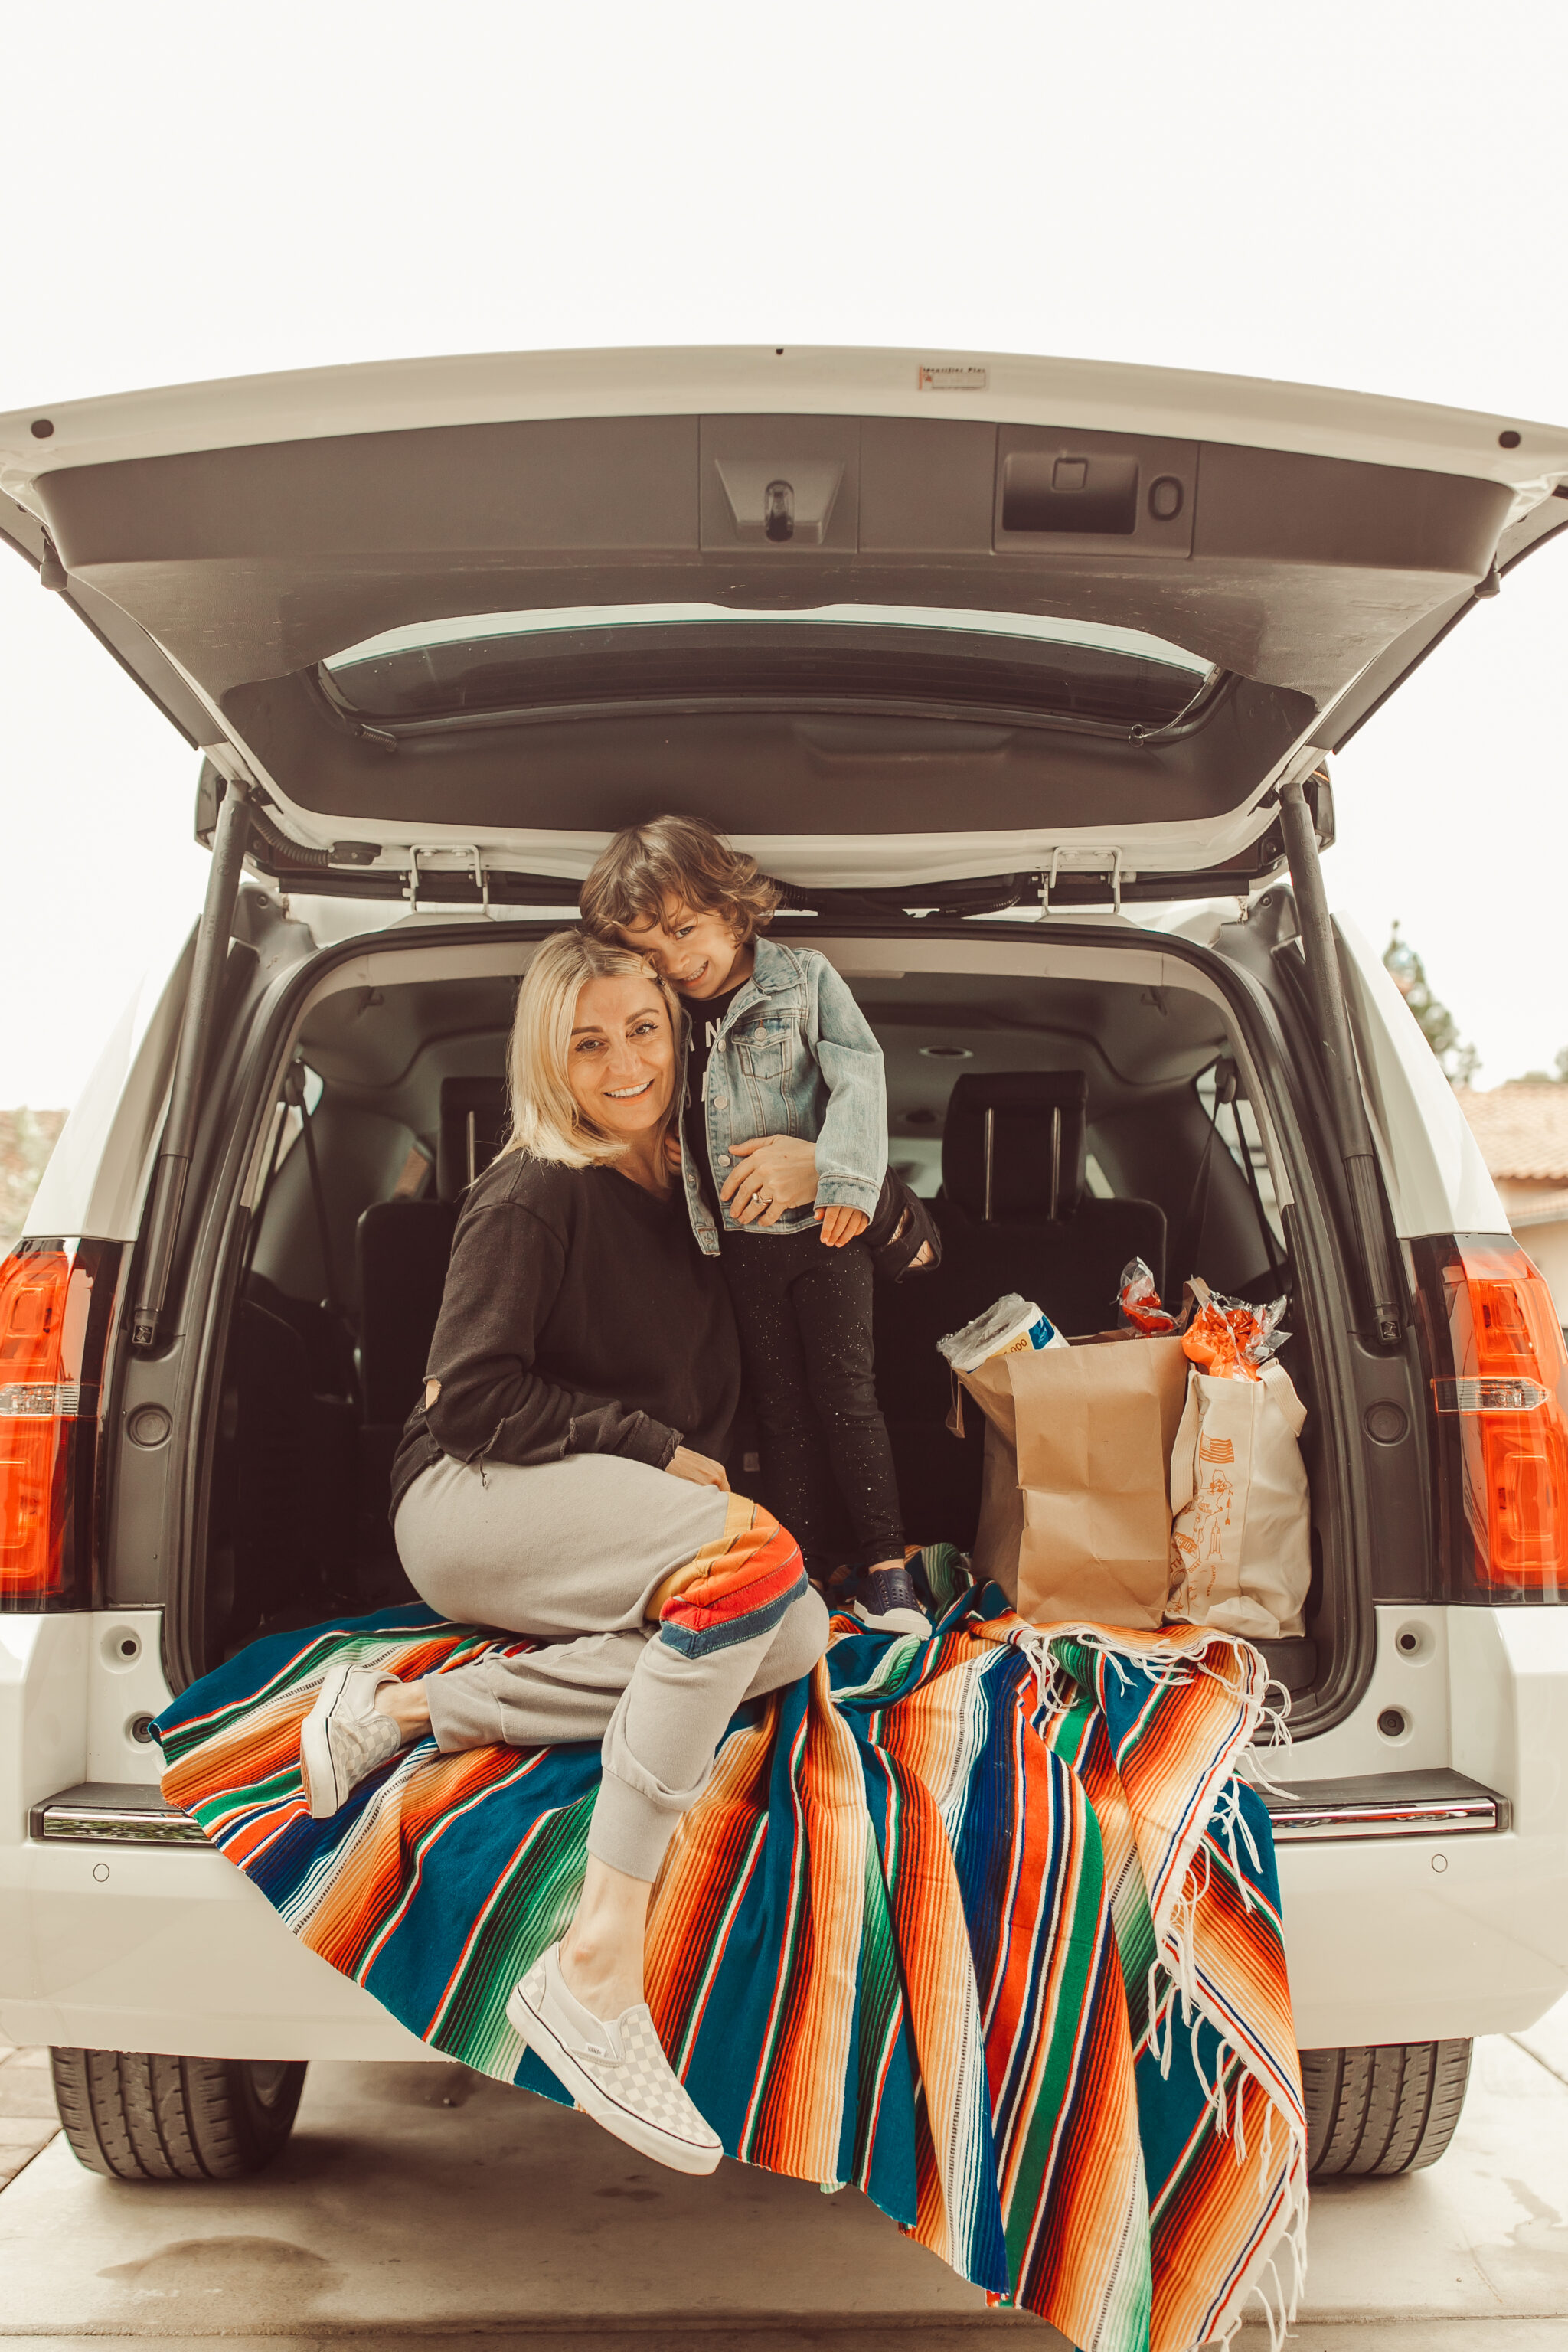 mom and kid with groceries in car